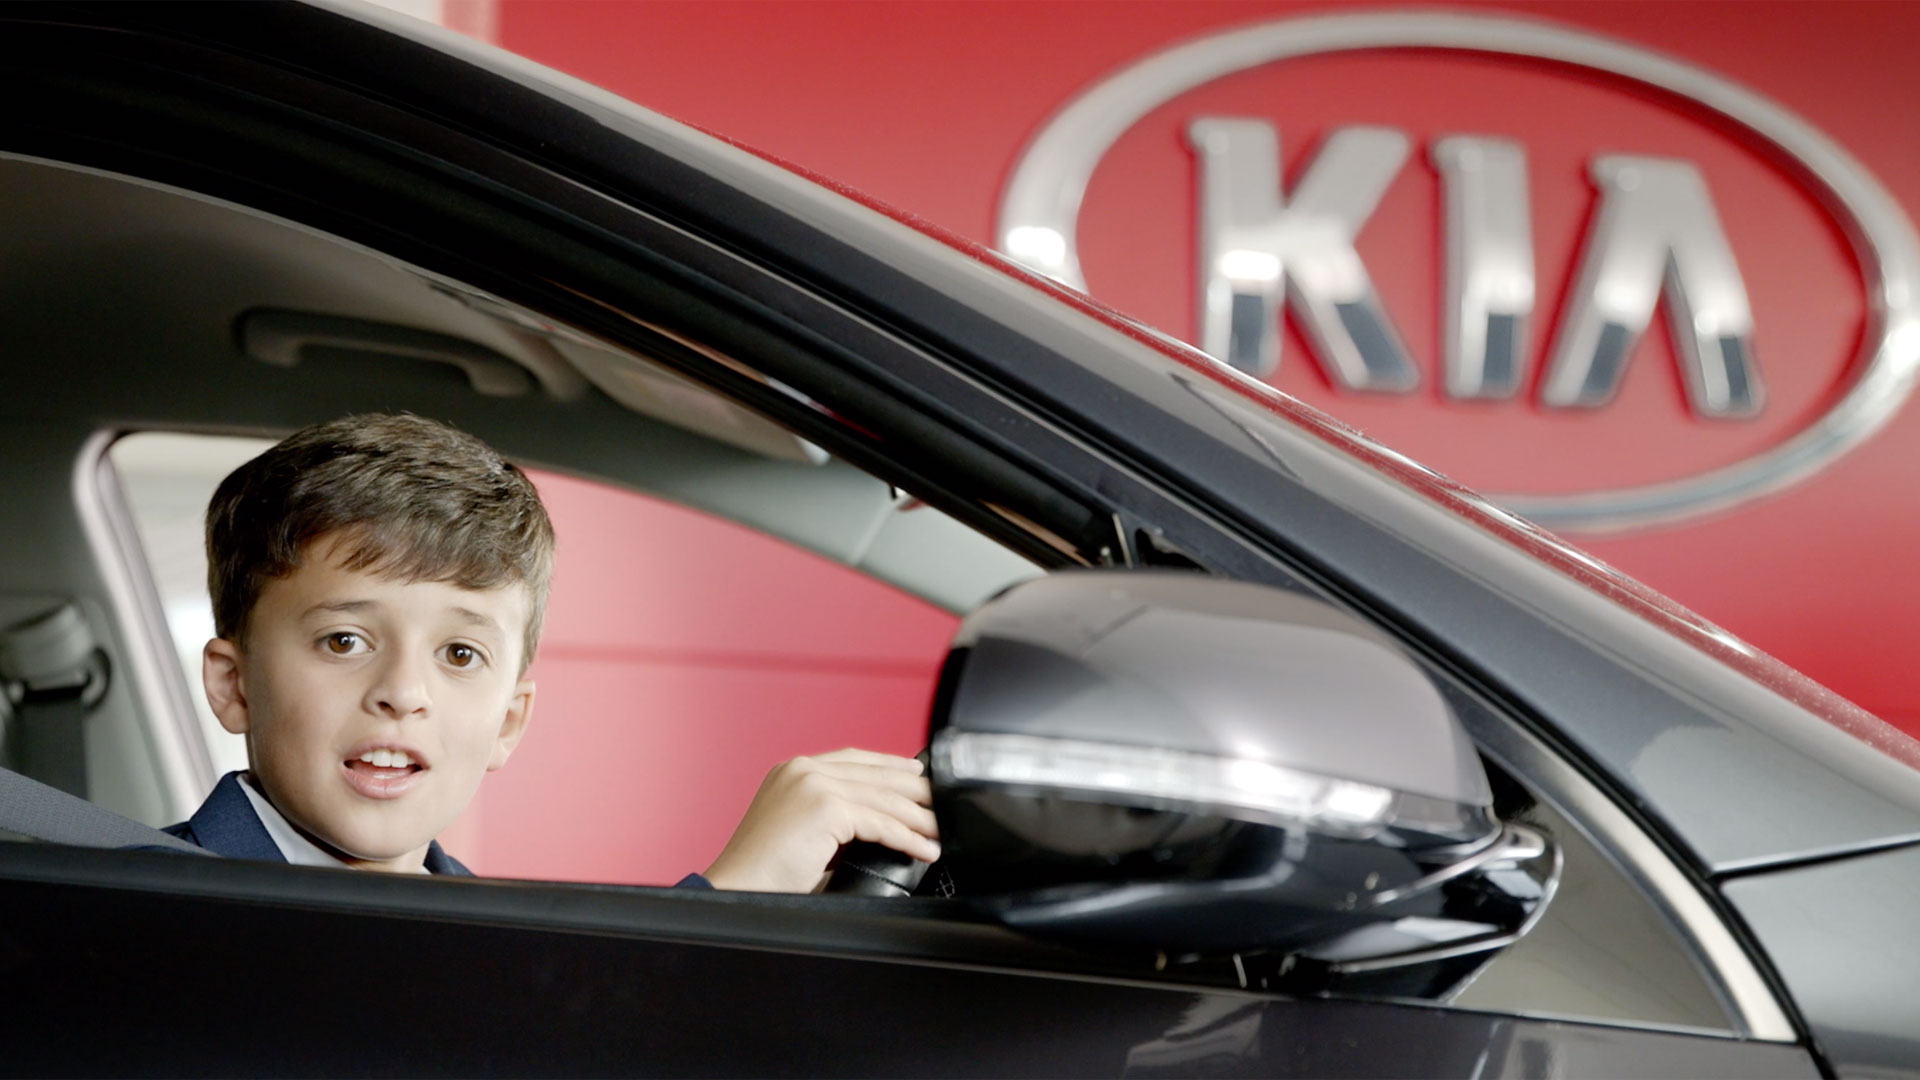 Kia electric car campaign